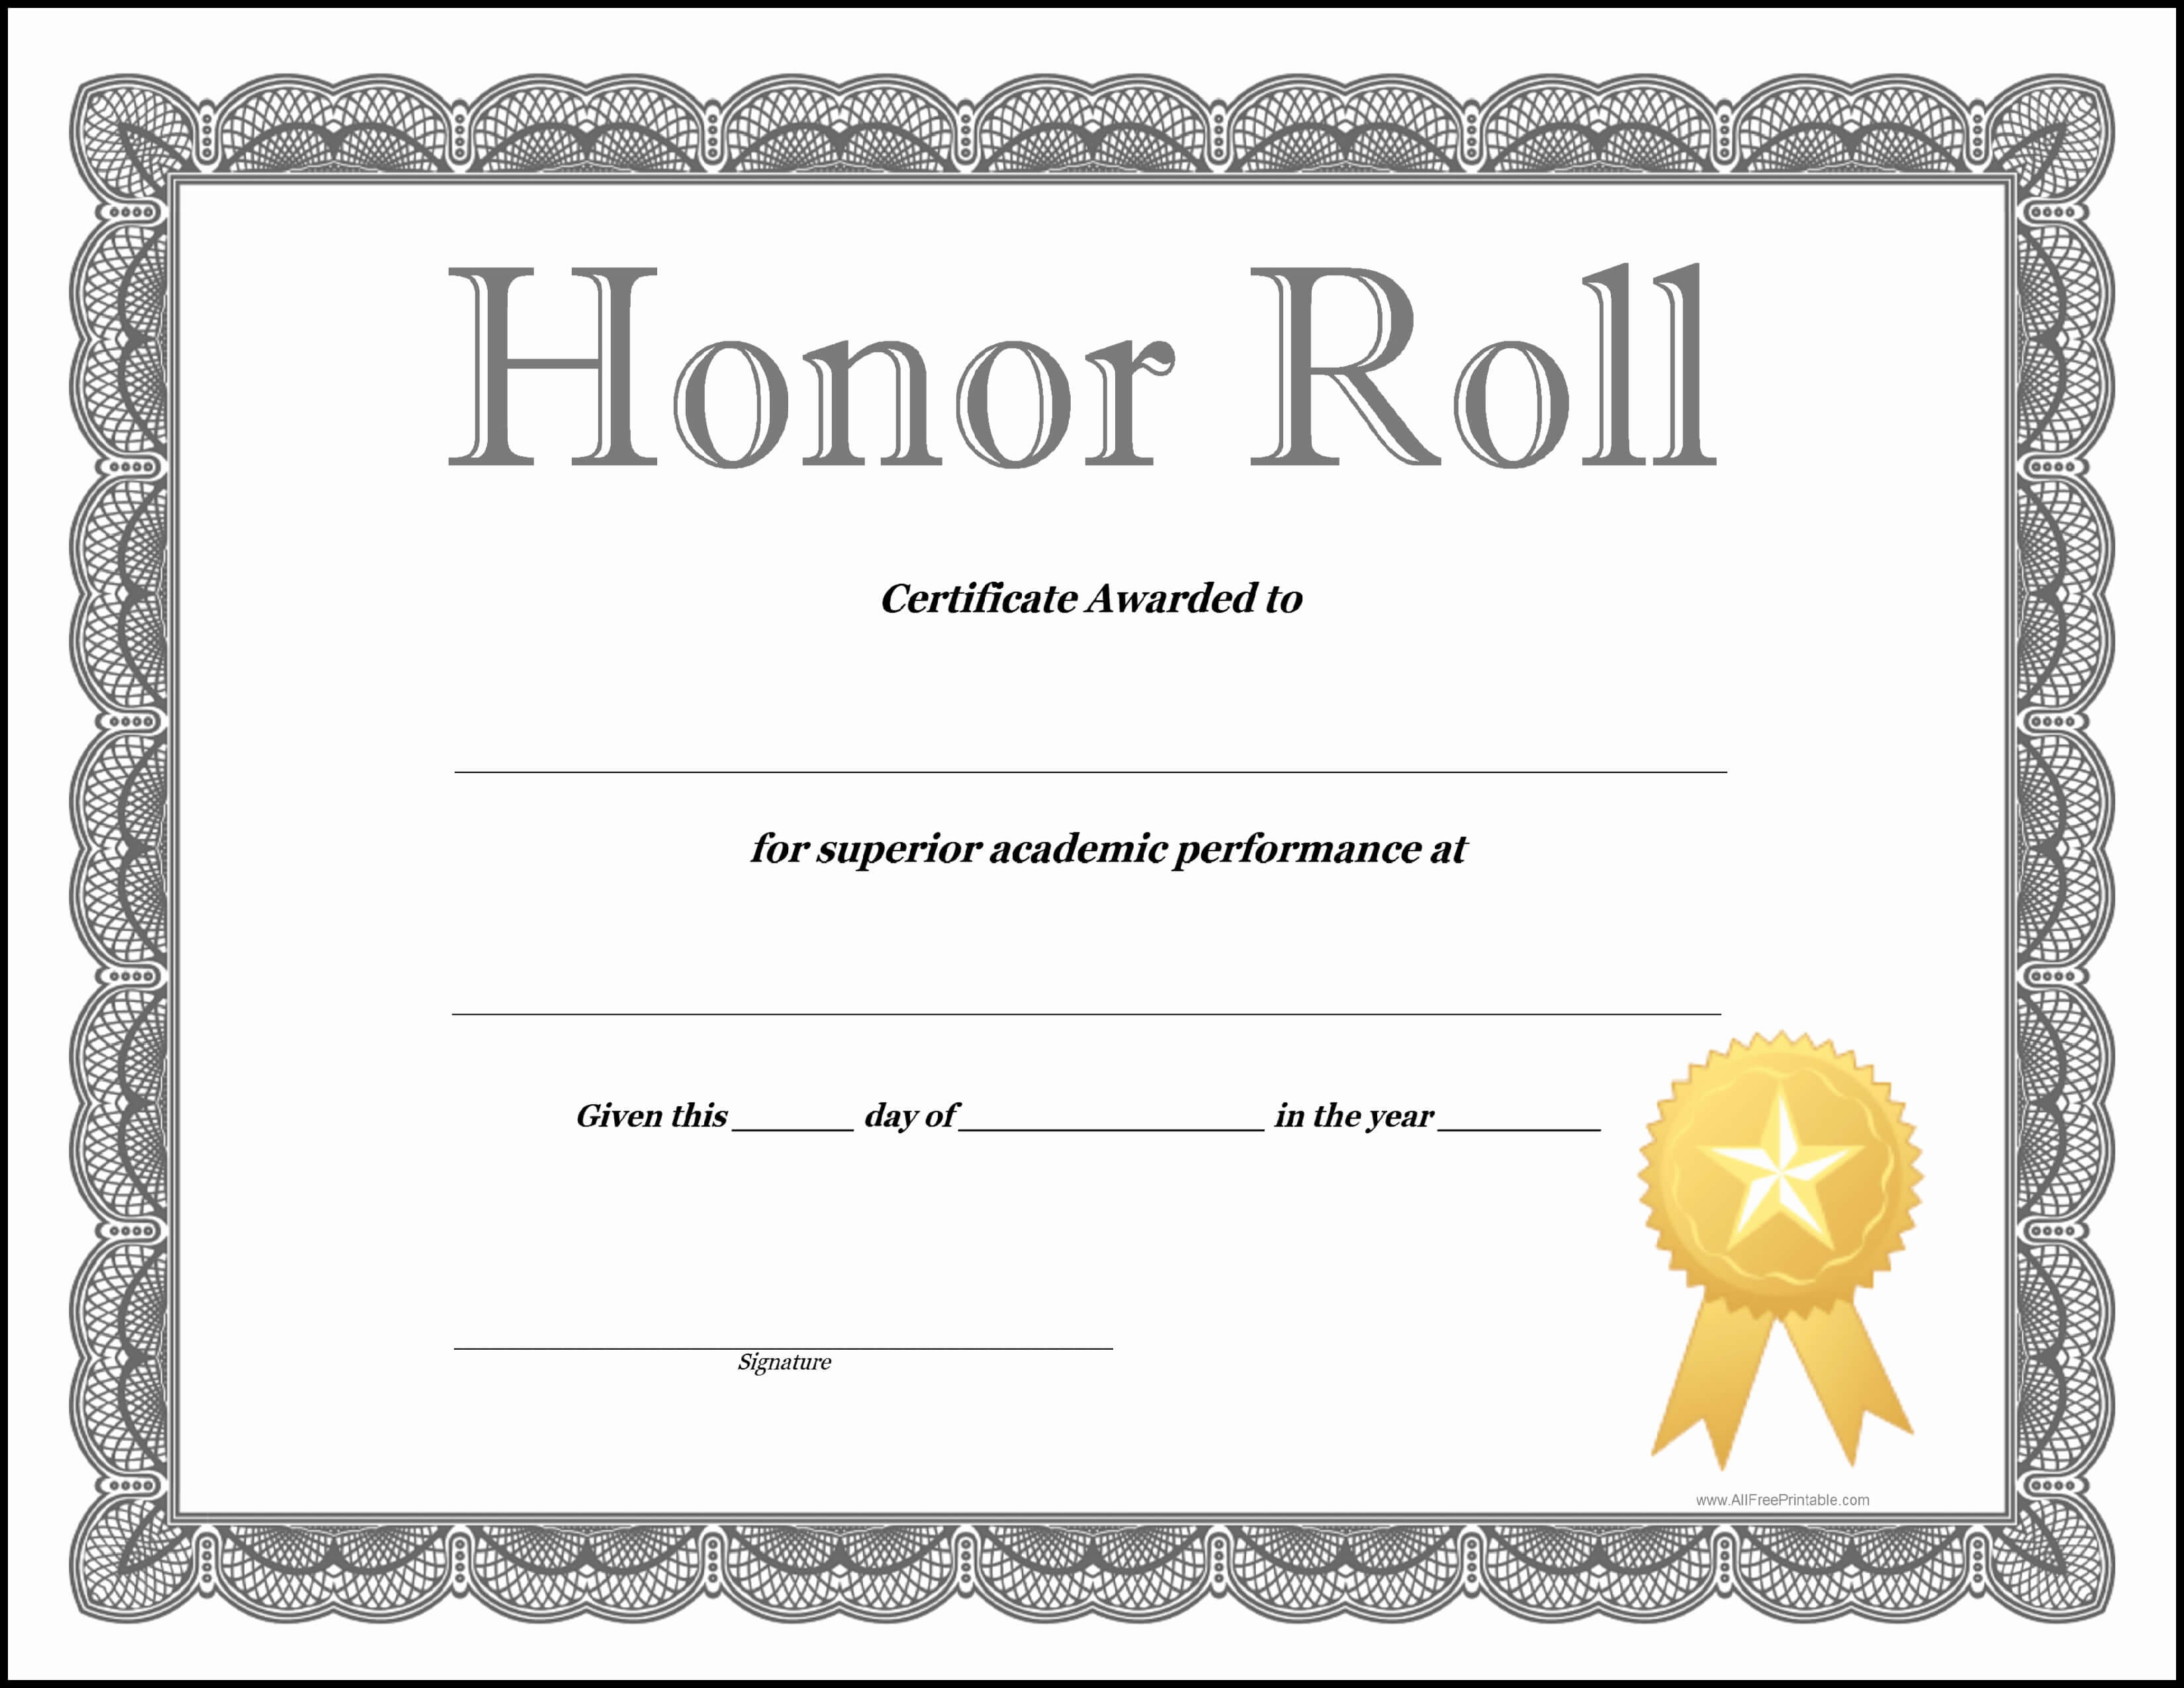 30 Life Saving Award Template | Pryncepality throughout Honor Roll Certificate Template